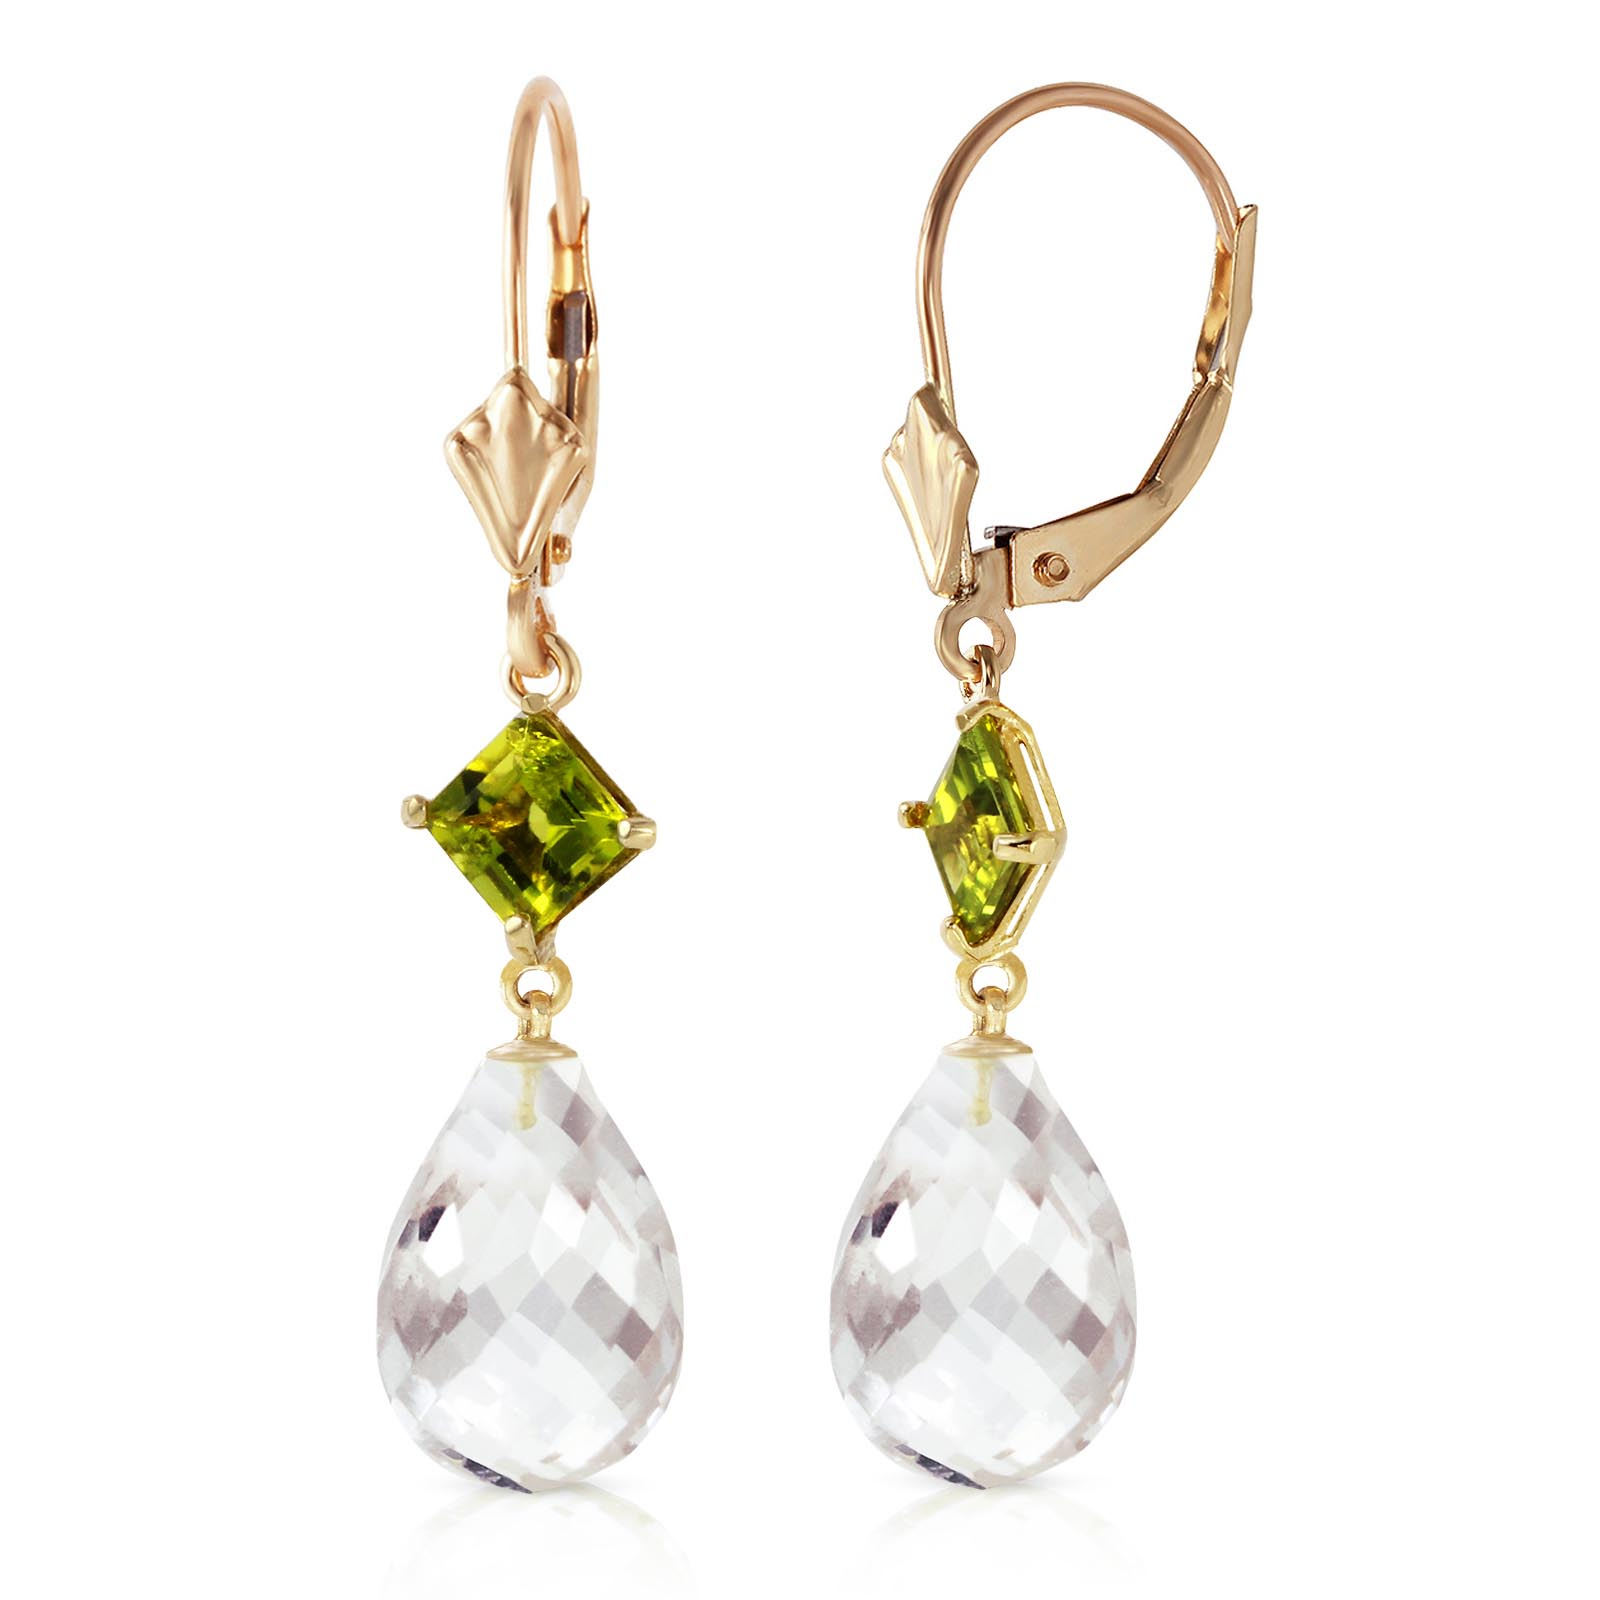 White Topaz and Peridot Drop Earrings 11.0ctw in 9ct Gold